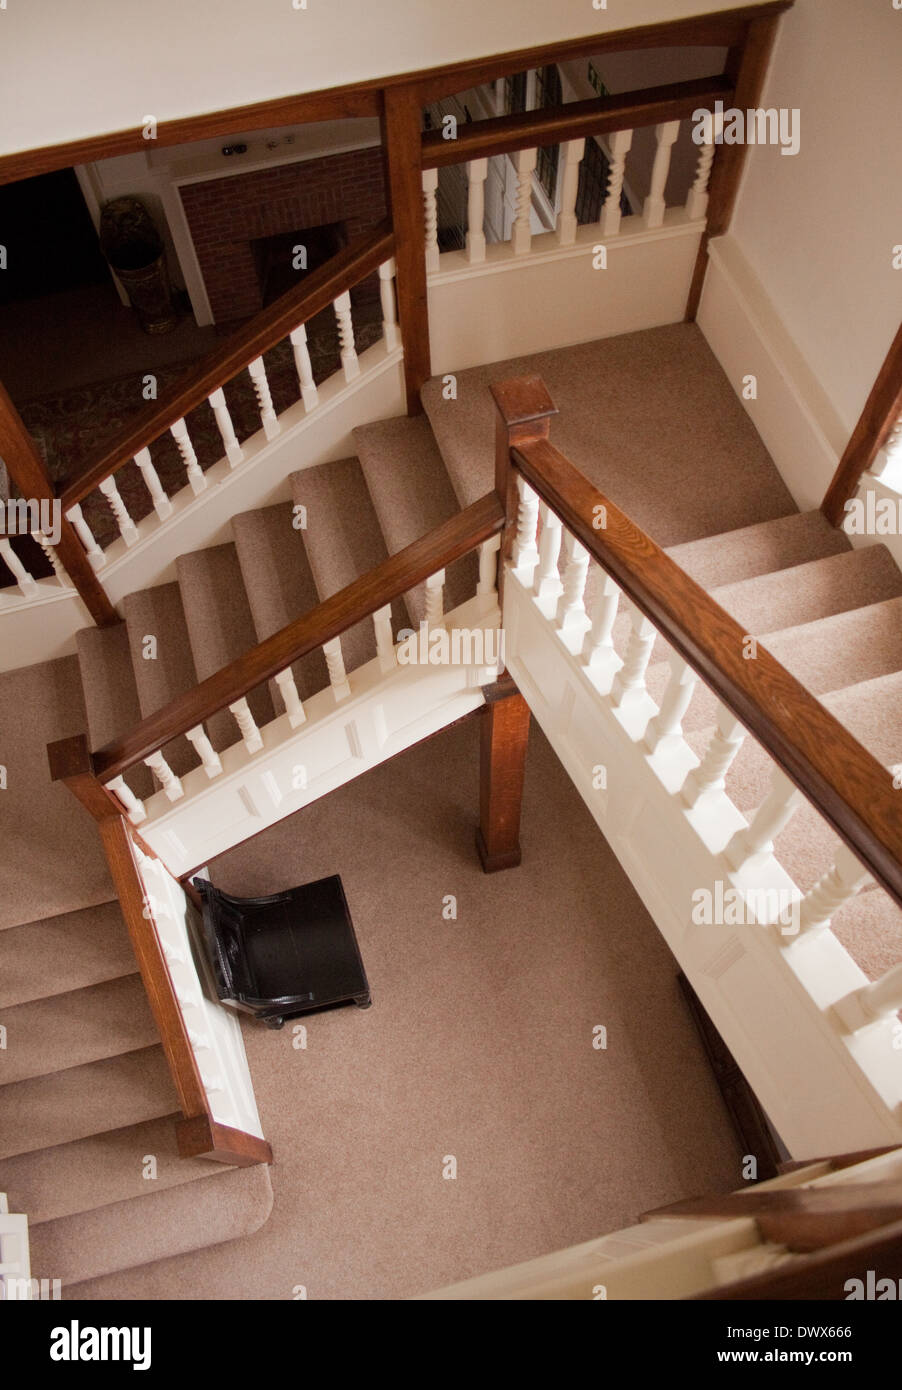 Staircase Banister And Balusters In Arts And Craft Style